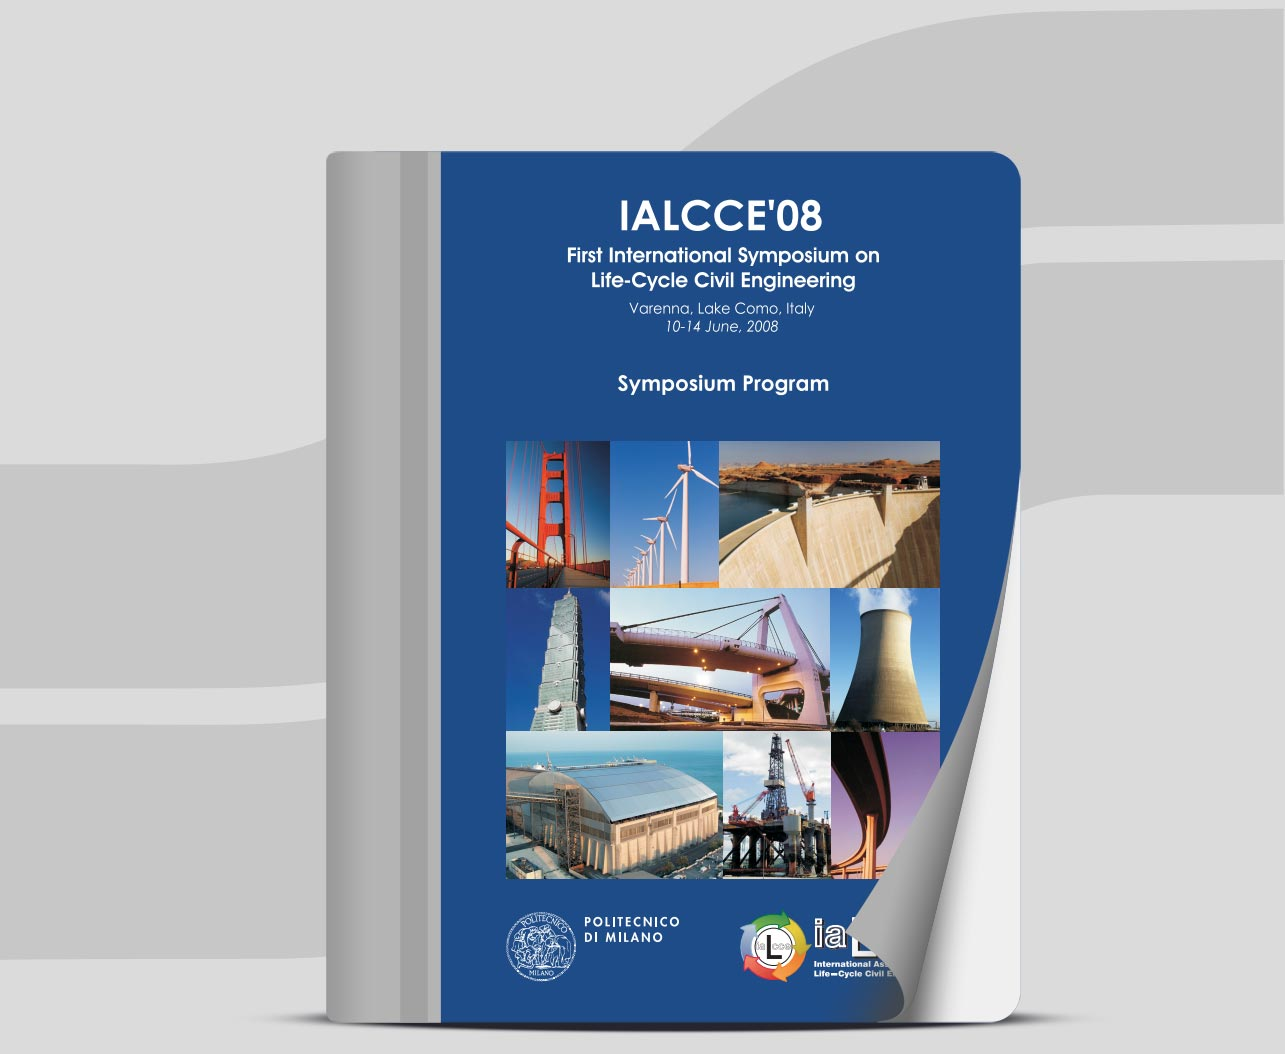 IALCEE '08 First International Symposium on Life-Cycle Civil Engineering - June 2008 - Sineco